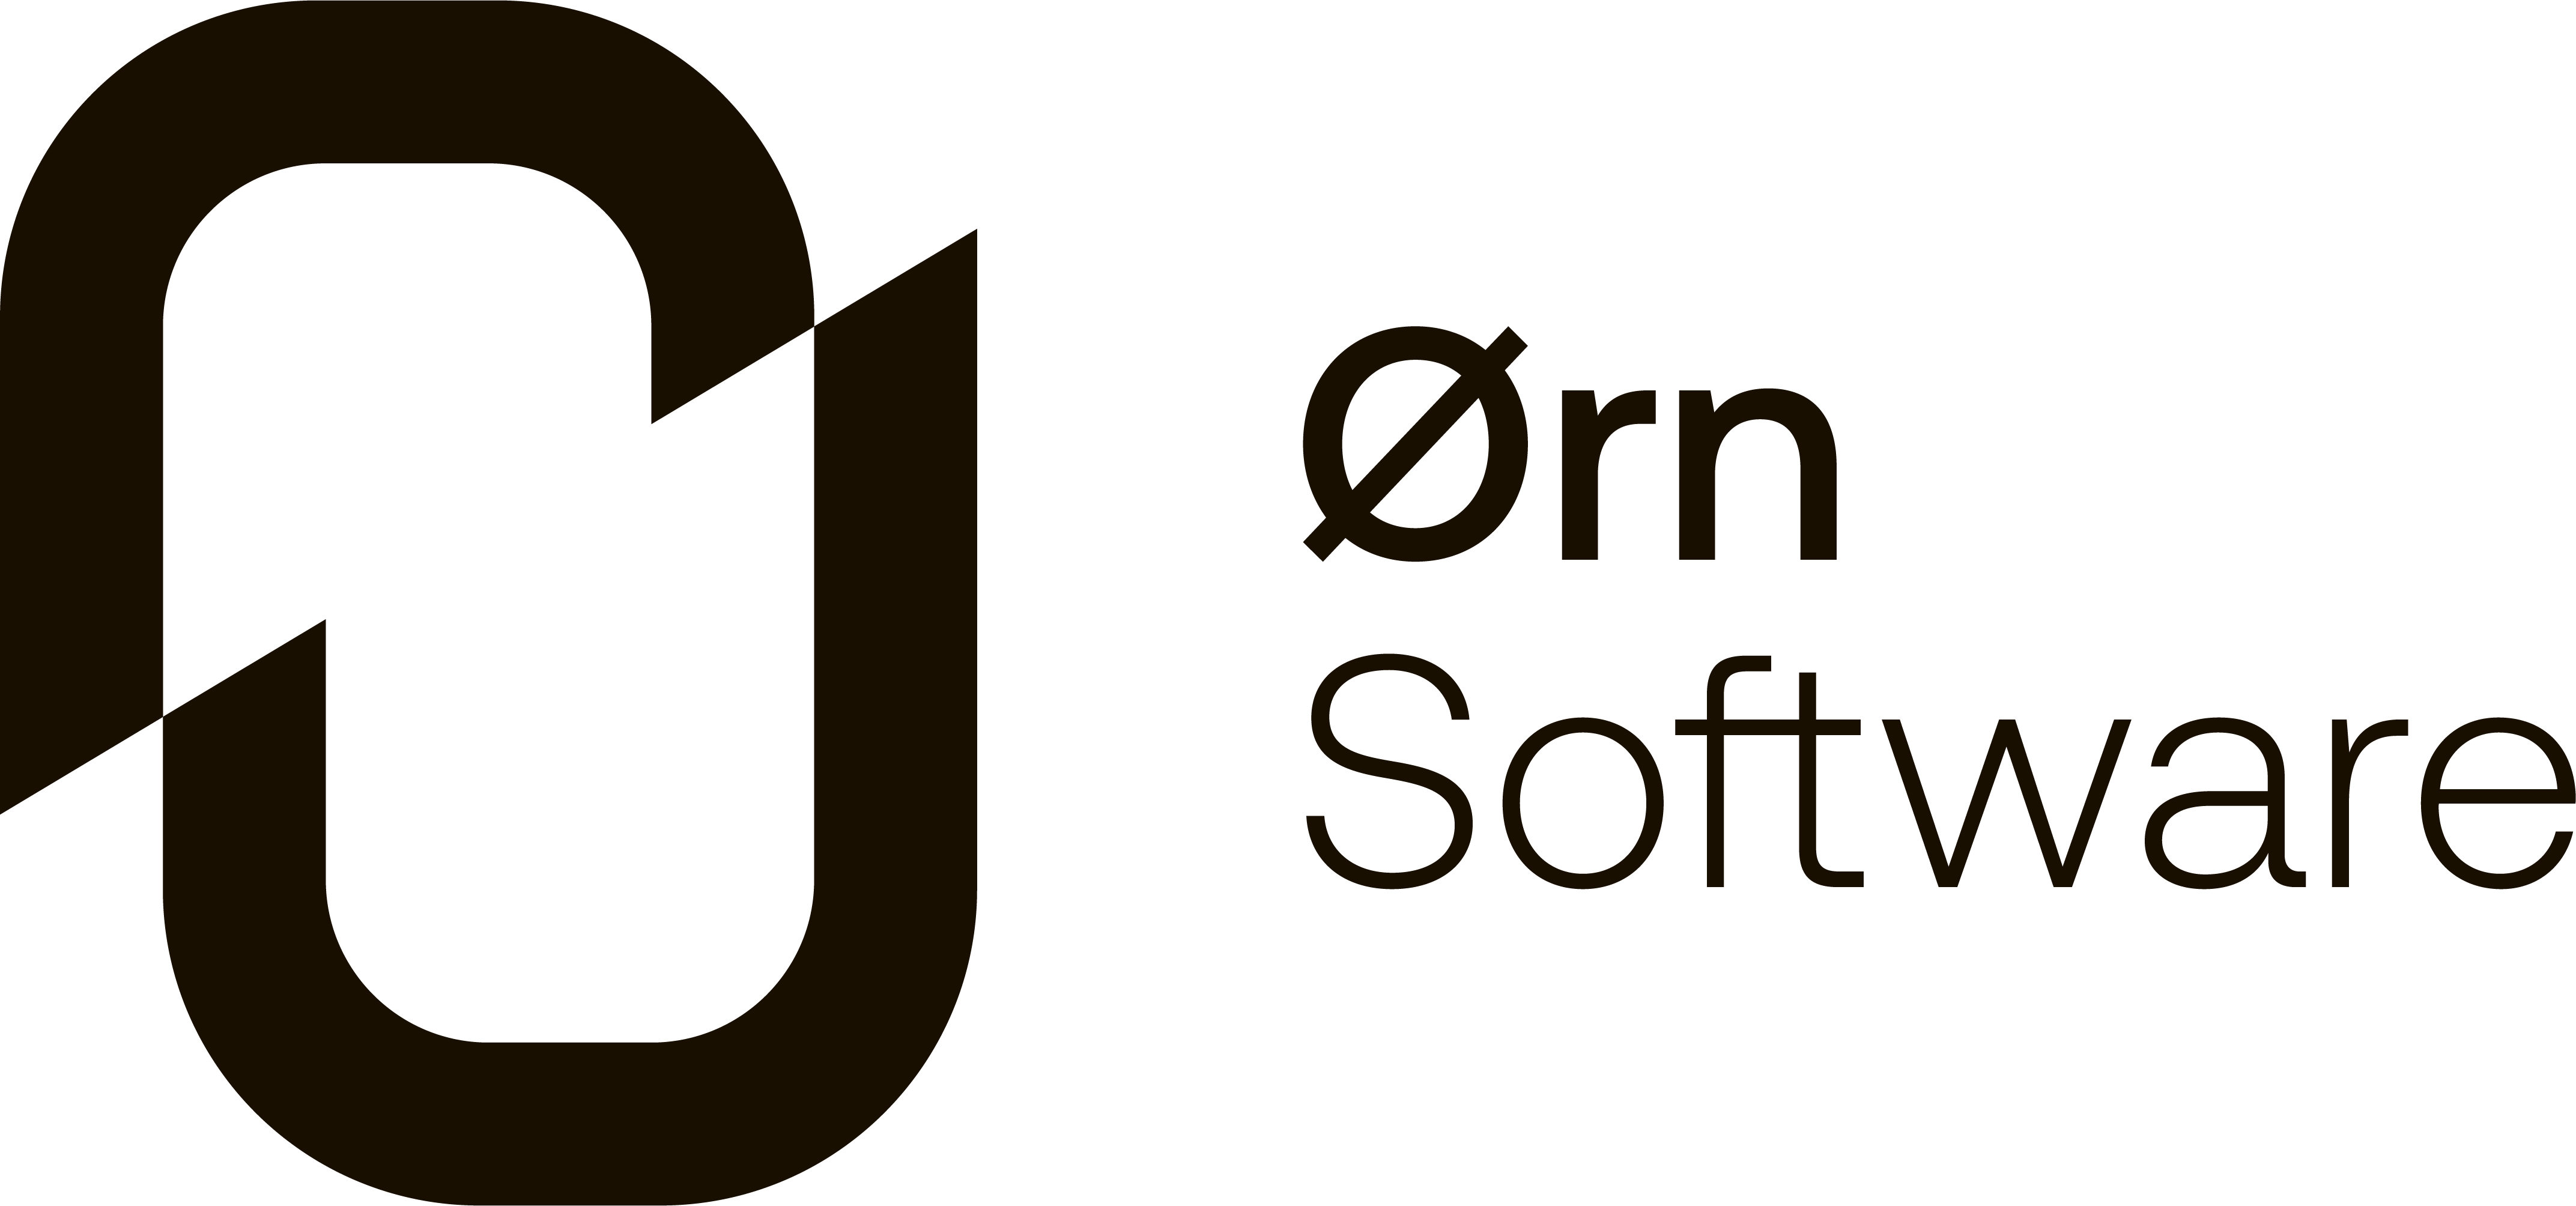 ørn software logo